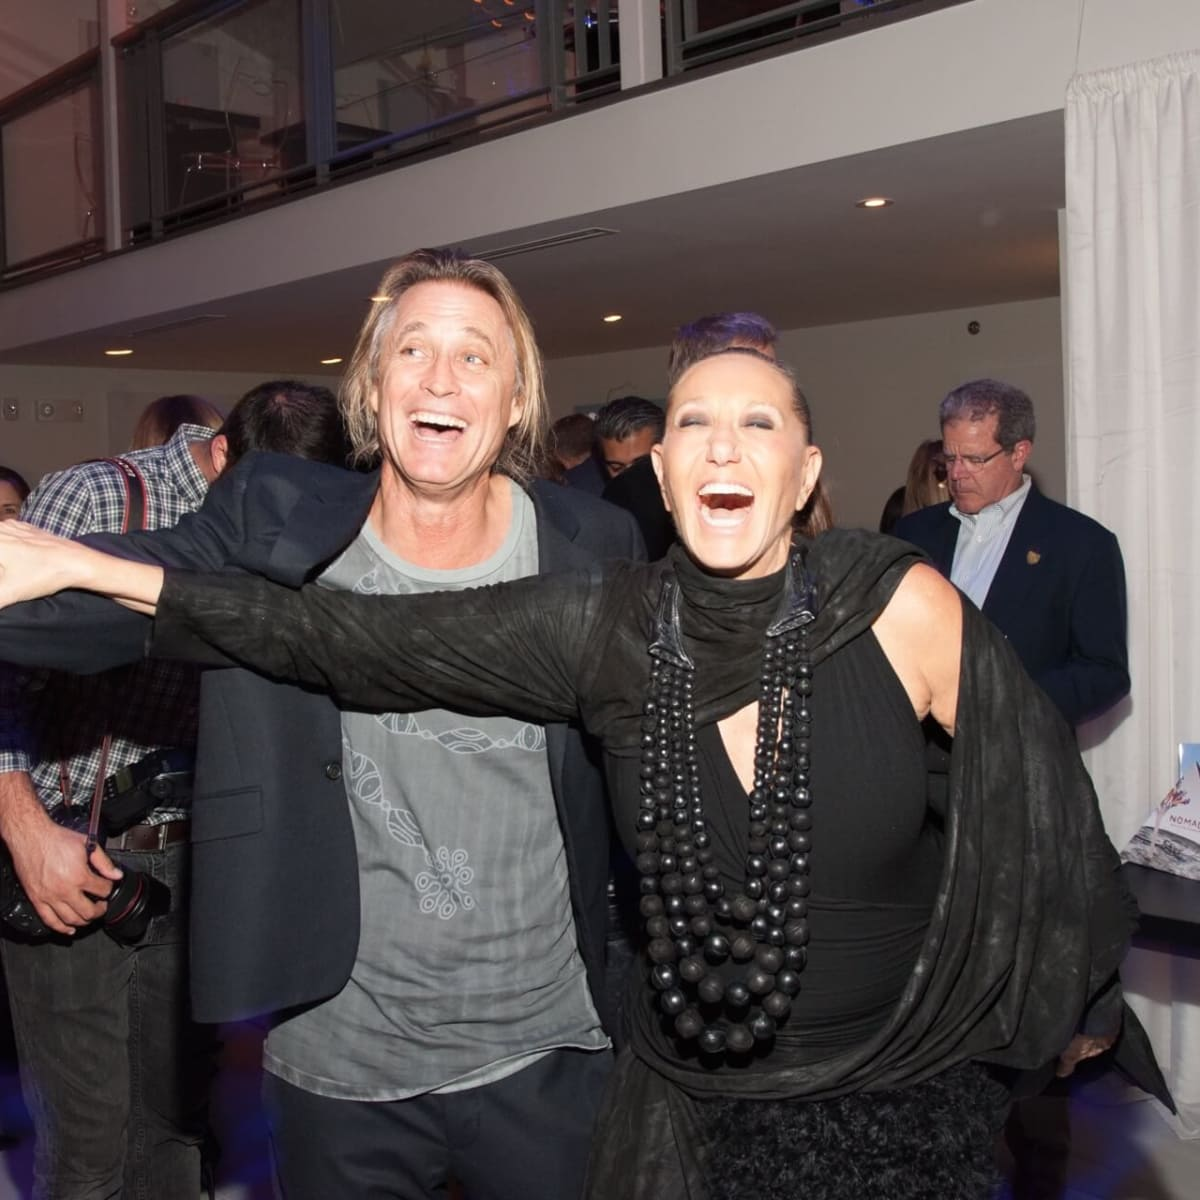 Russell James, Donna Karan at Nomad fundraiser